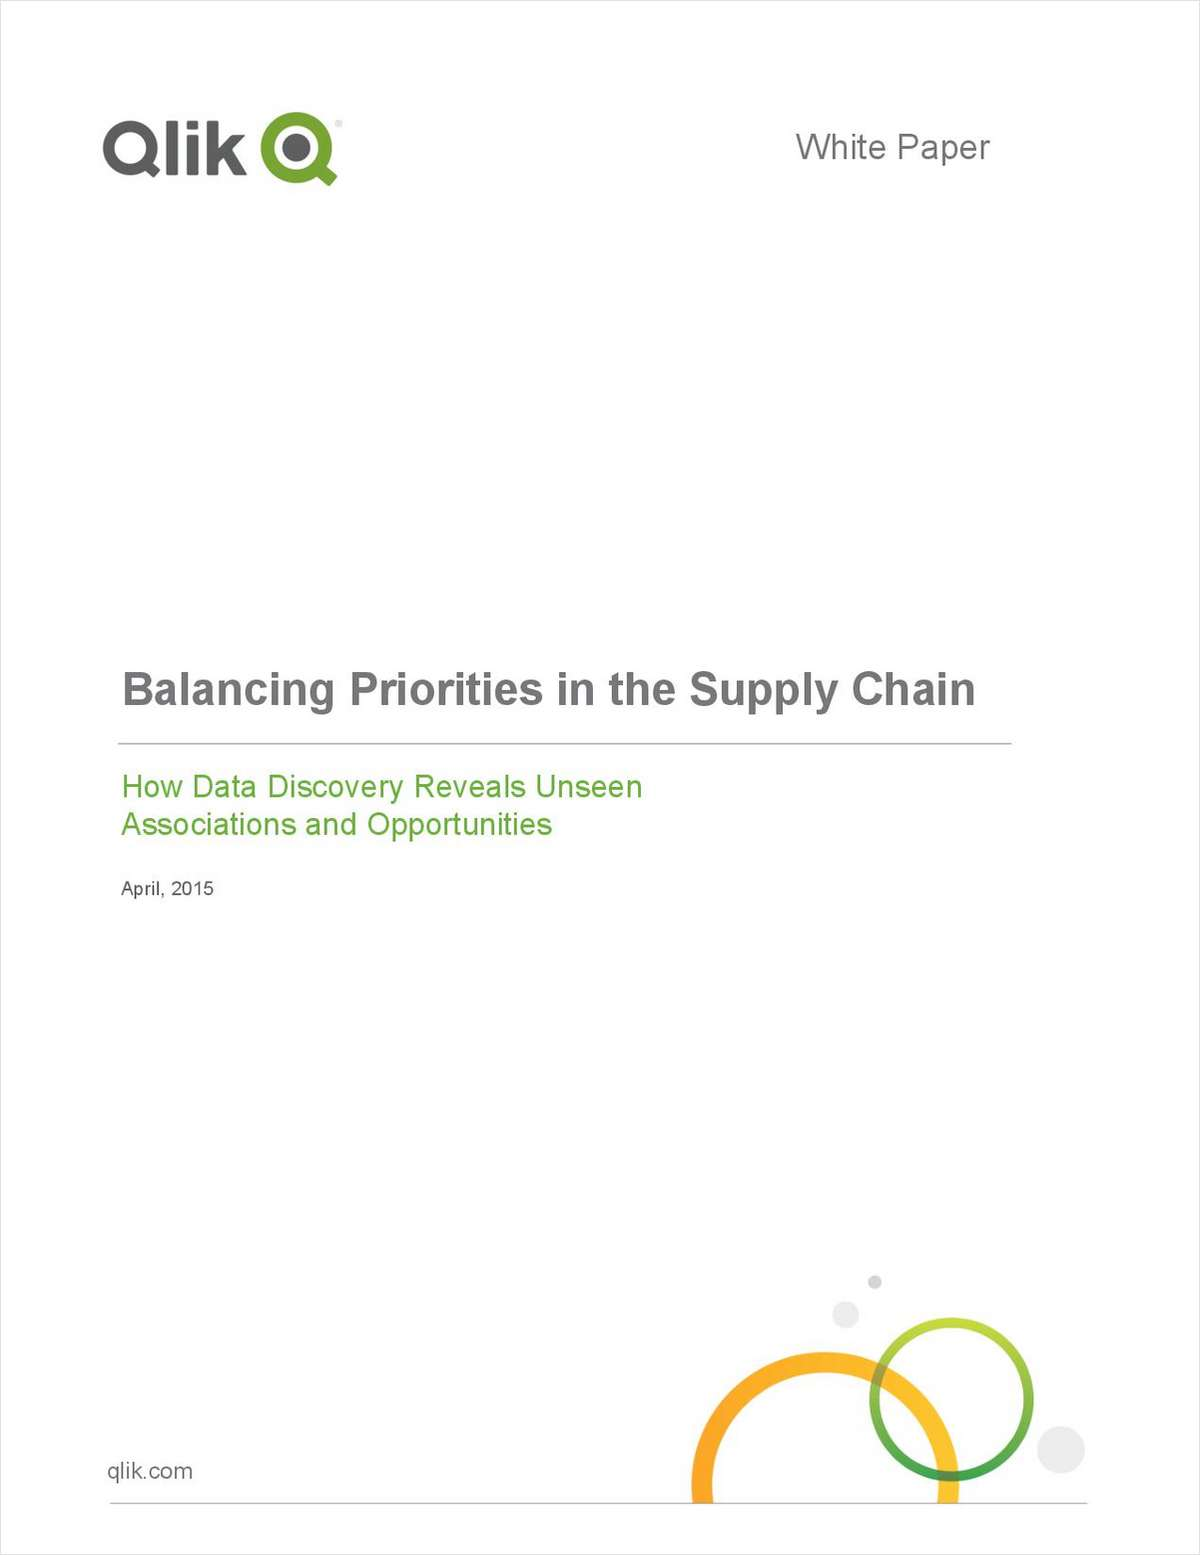 Balancing Priorities in the Supply Chain: How Data Discovery Reveals Unseen Associations and Opportunities